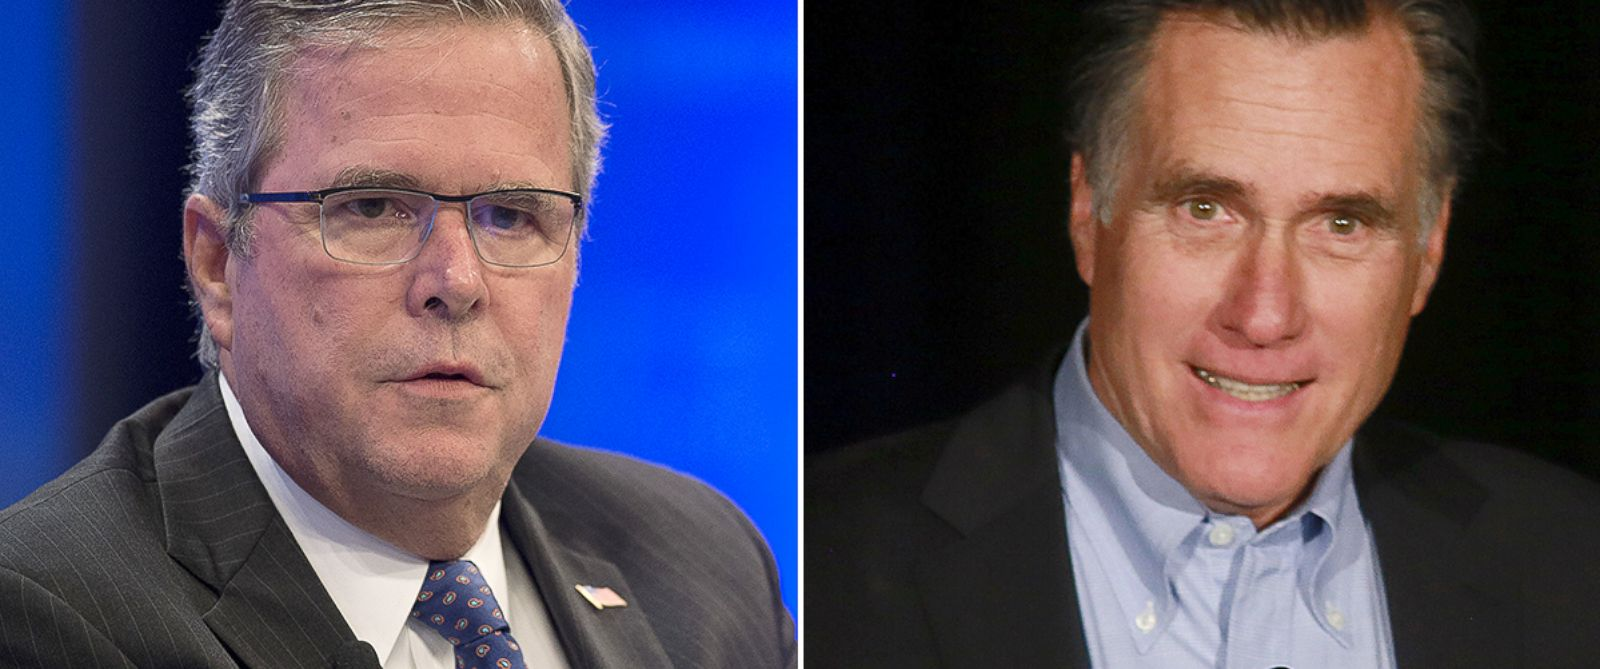 PHOTO: Jeb Bush to meet with Mitt Romney.